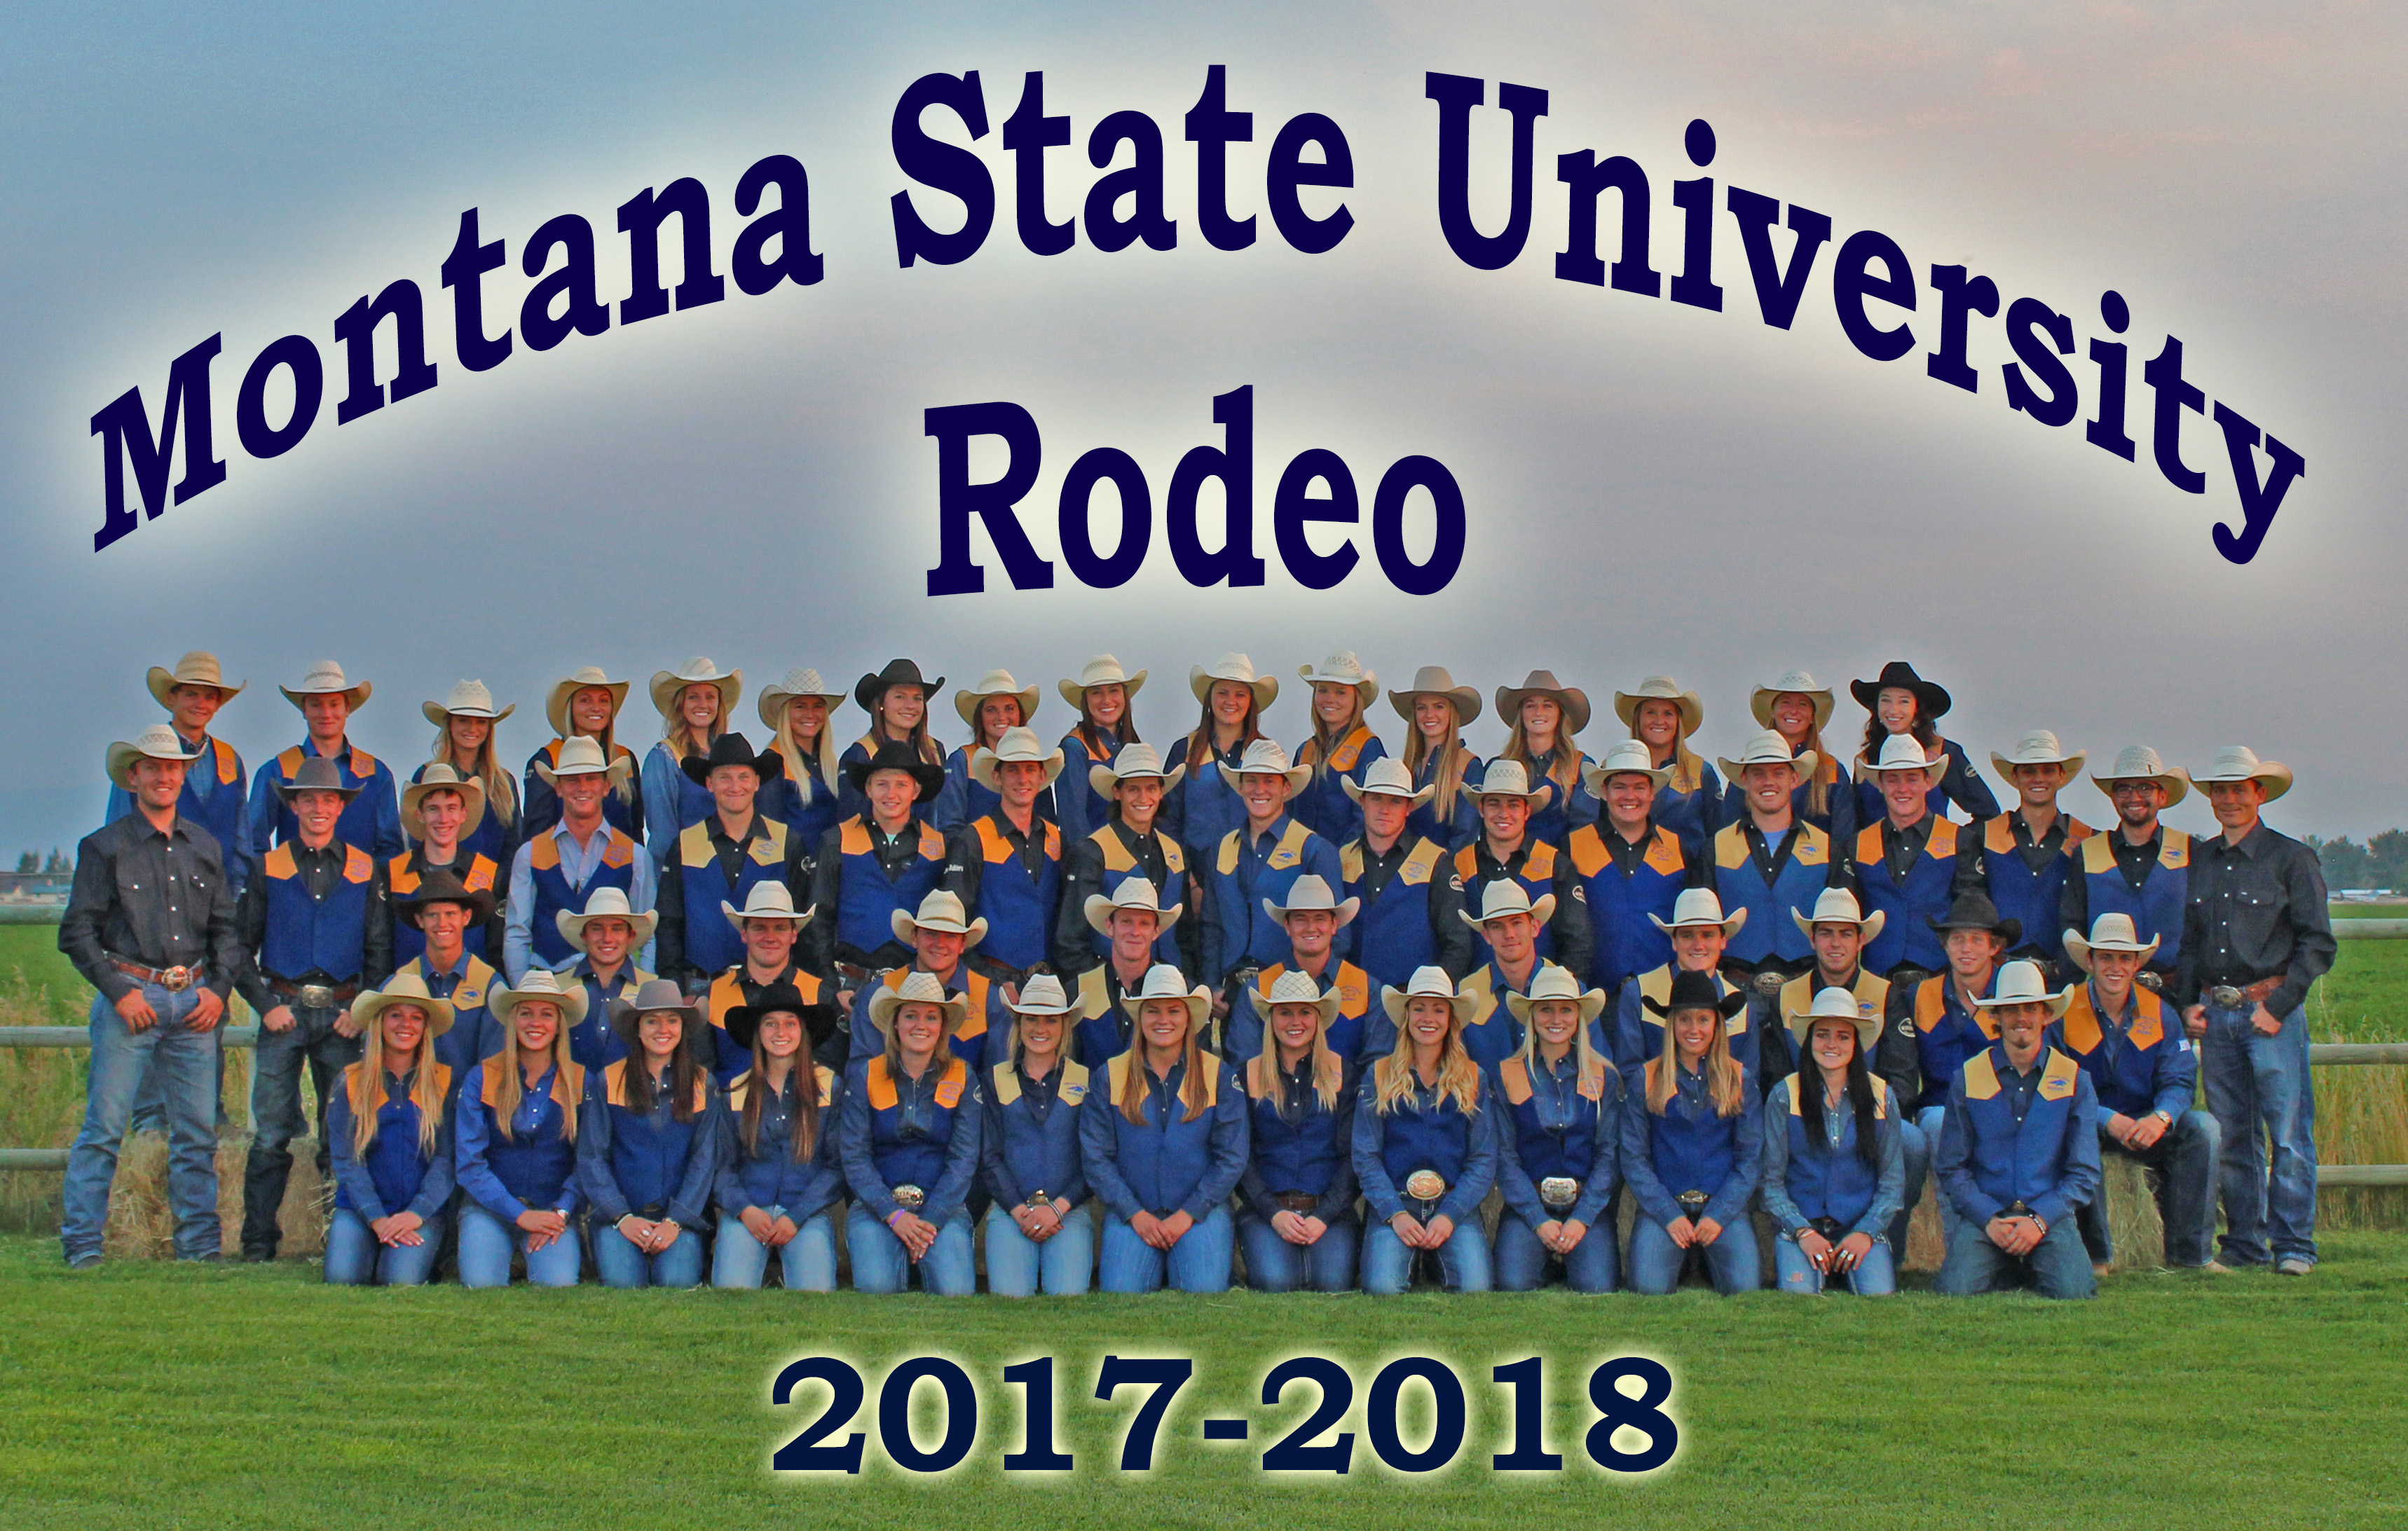 Bobcat Rodeo Team Bobcat Rodeo Office Montana State